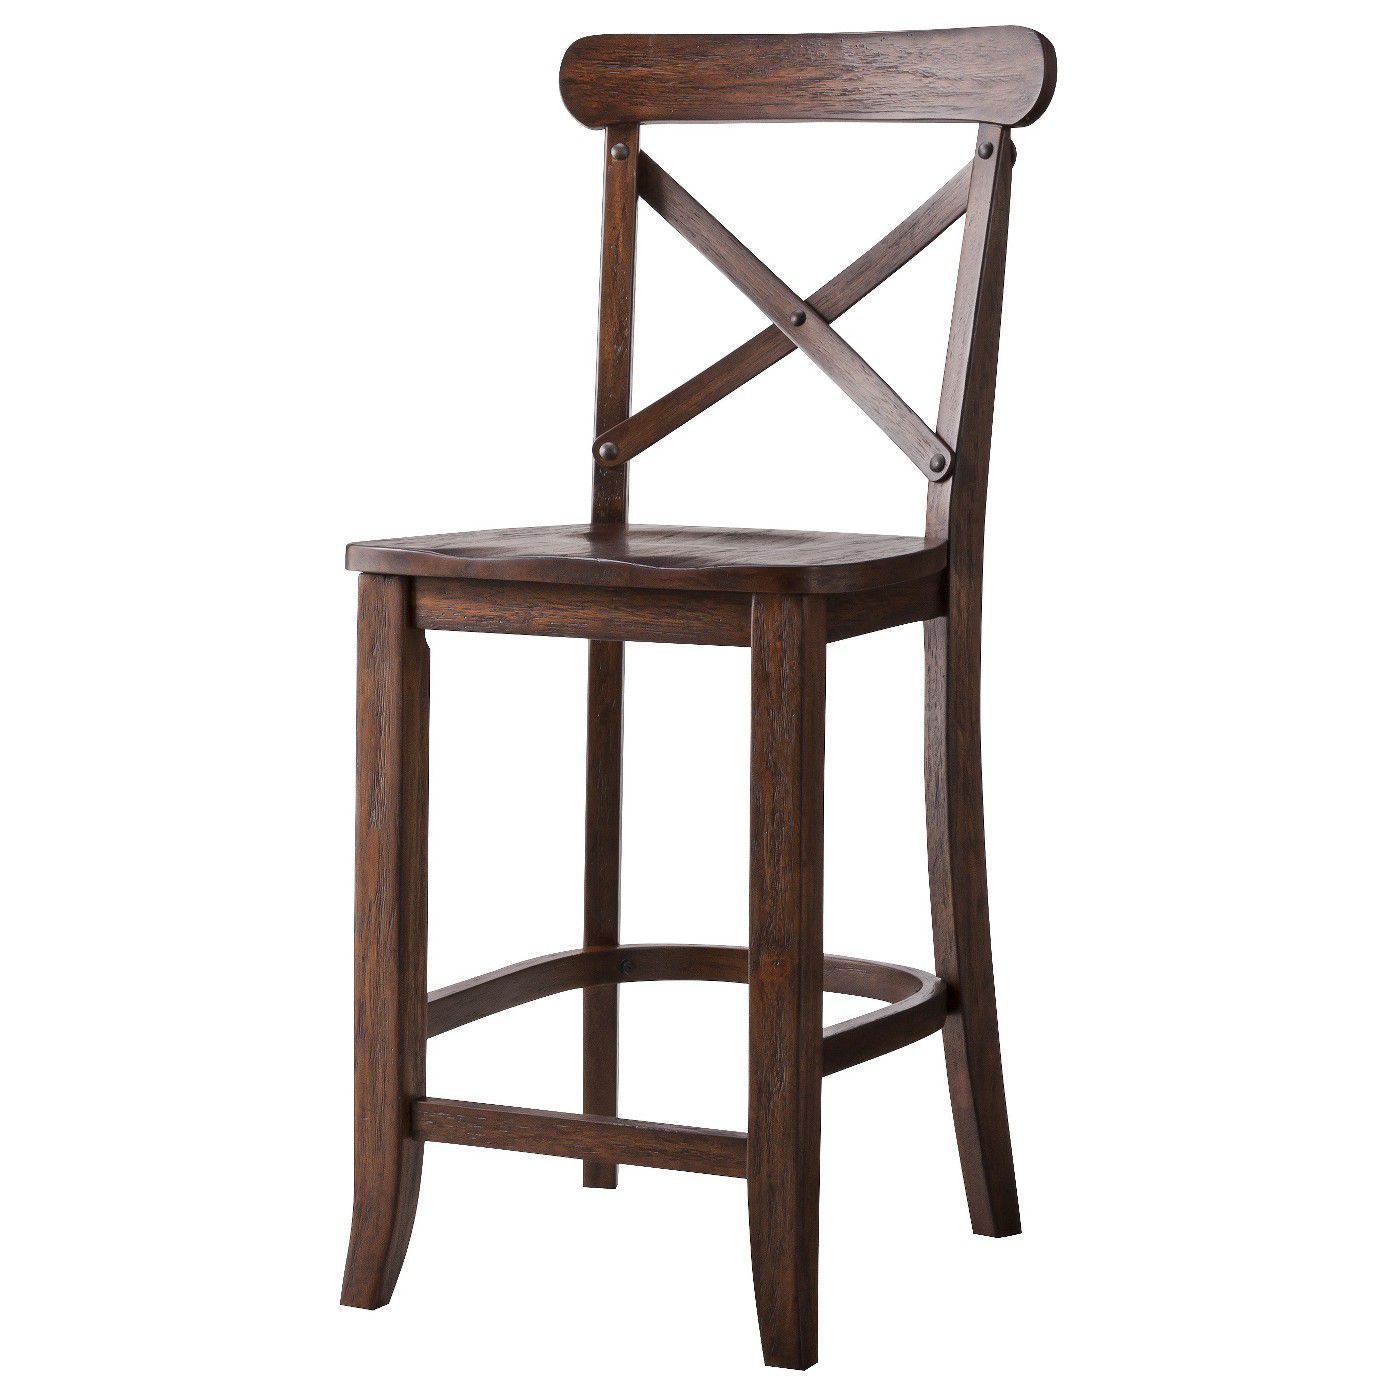 10 Farmhouse Bar Stools For Your Kitchen Style Your